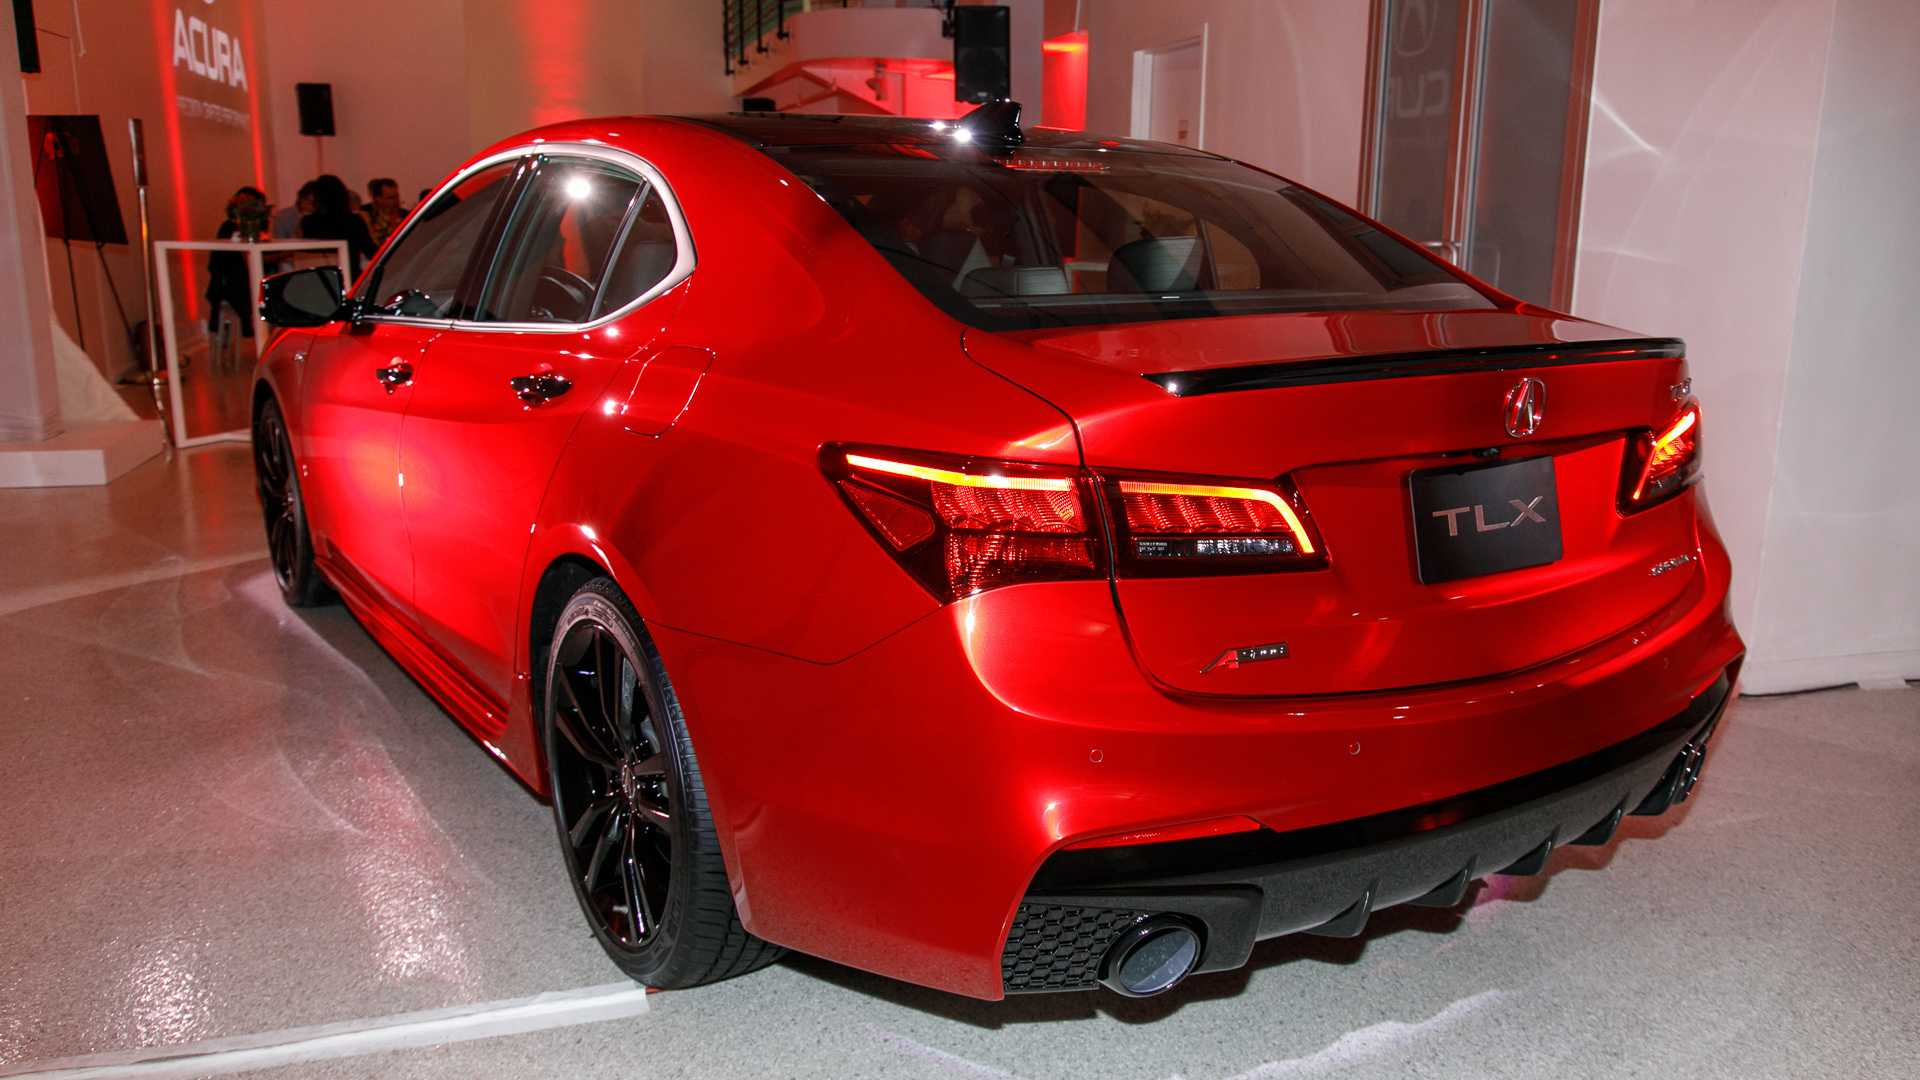 84 The 2020 Acura Tlx Pmc Edition Hp Release Date And Concept